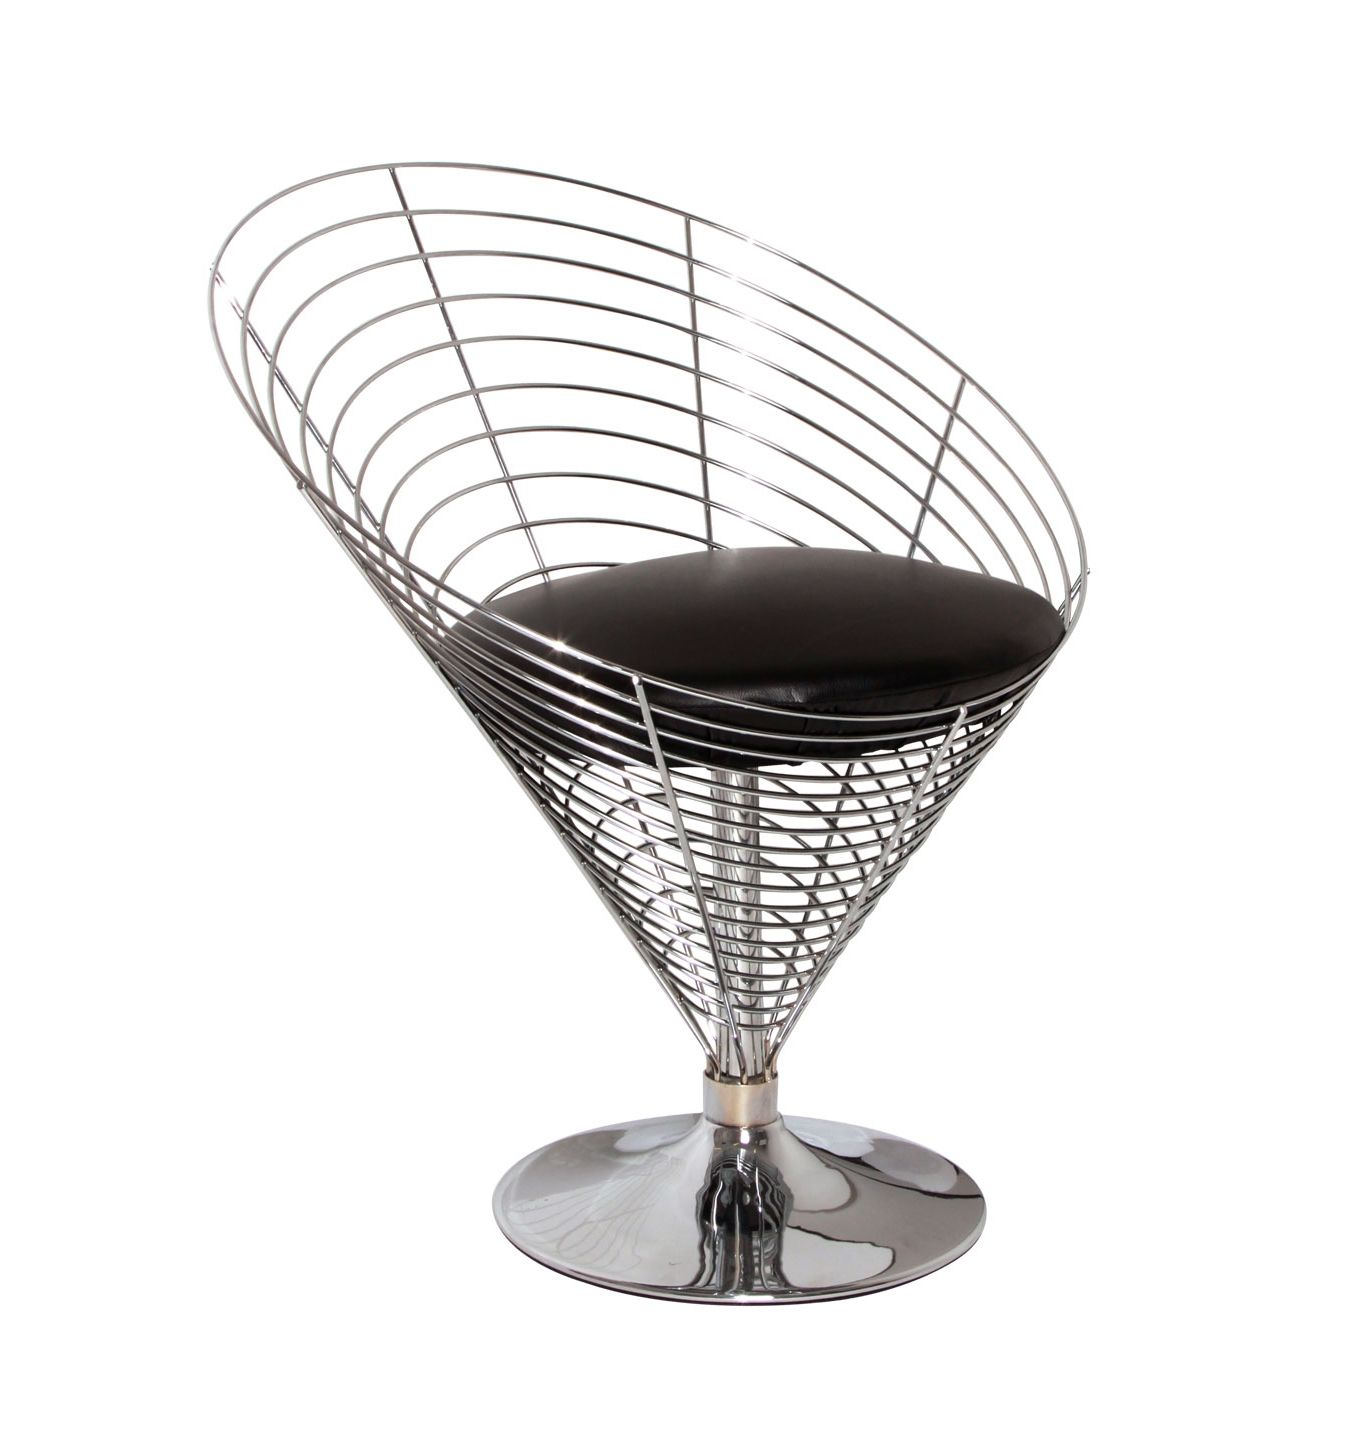 Designer Wire Chair Replica Verner Panton Wire Cone Chair By Vernon Panton